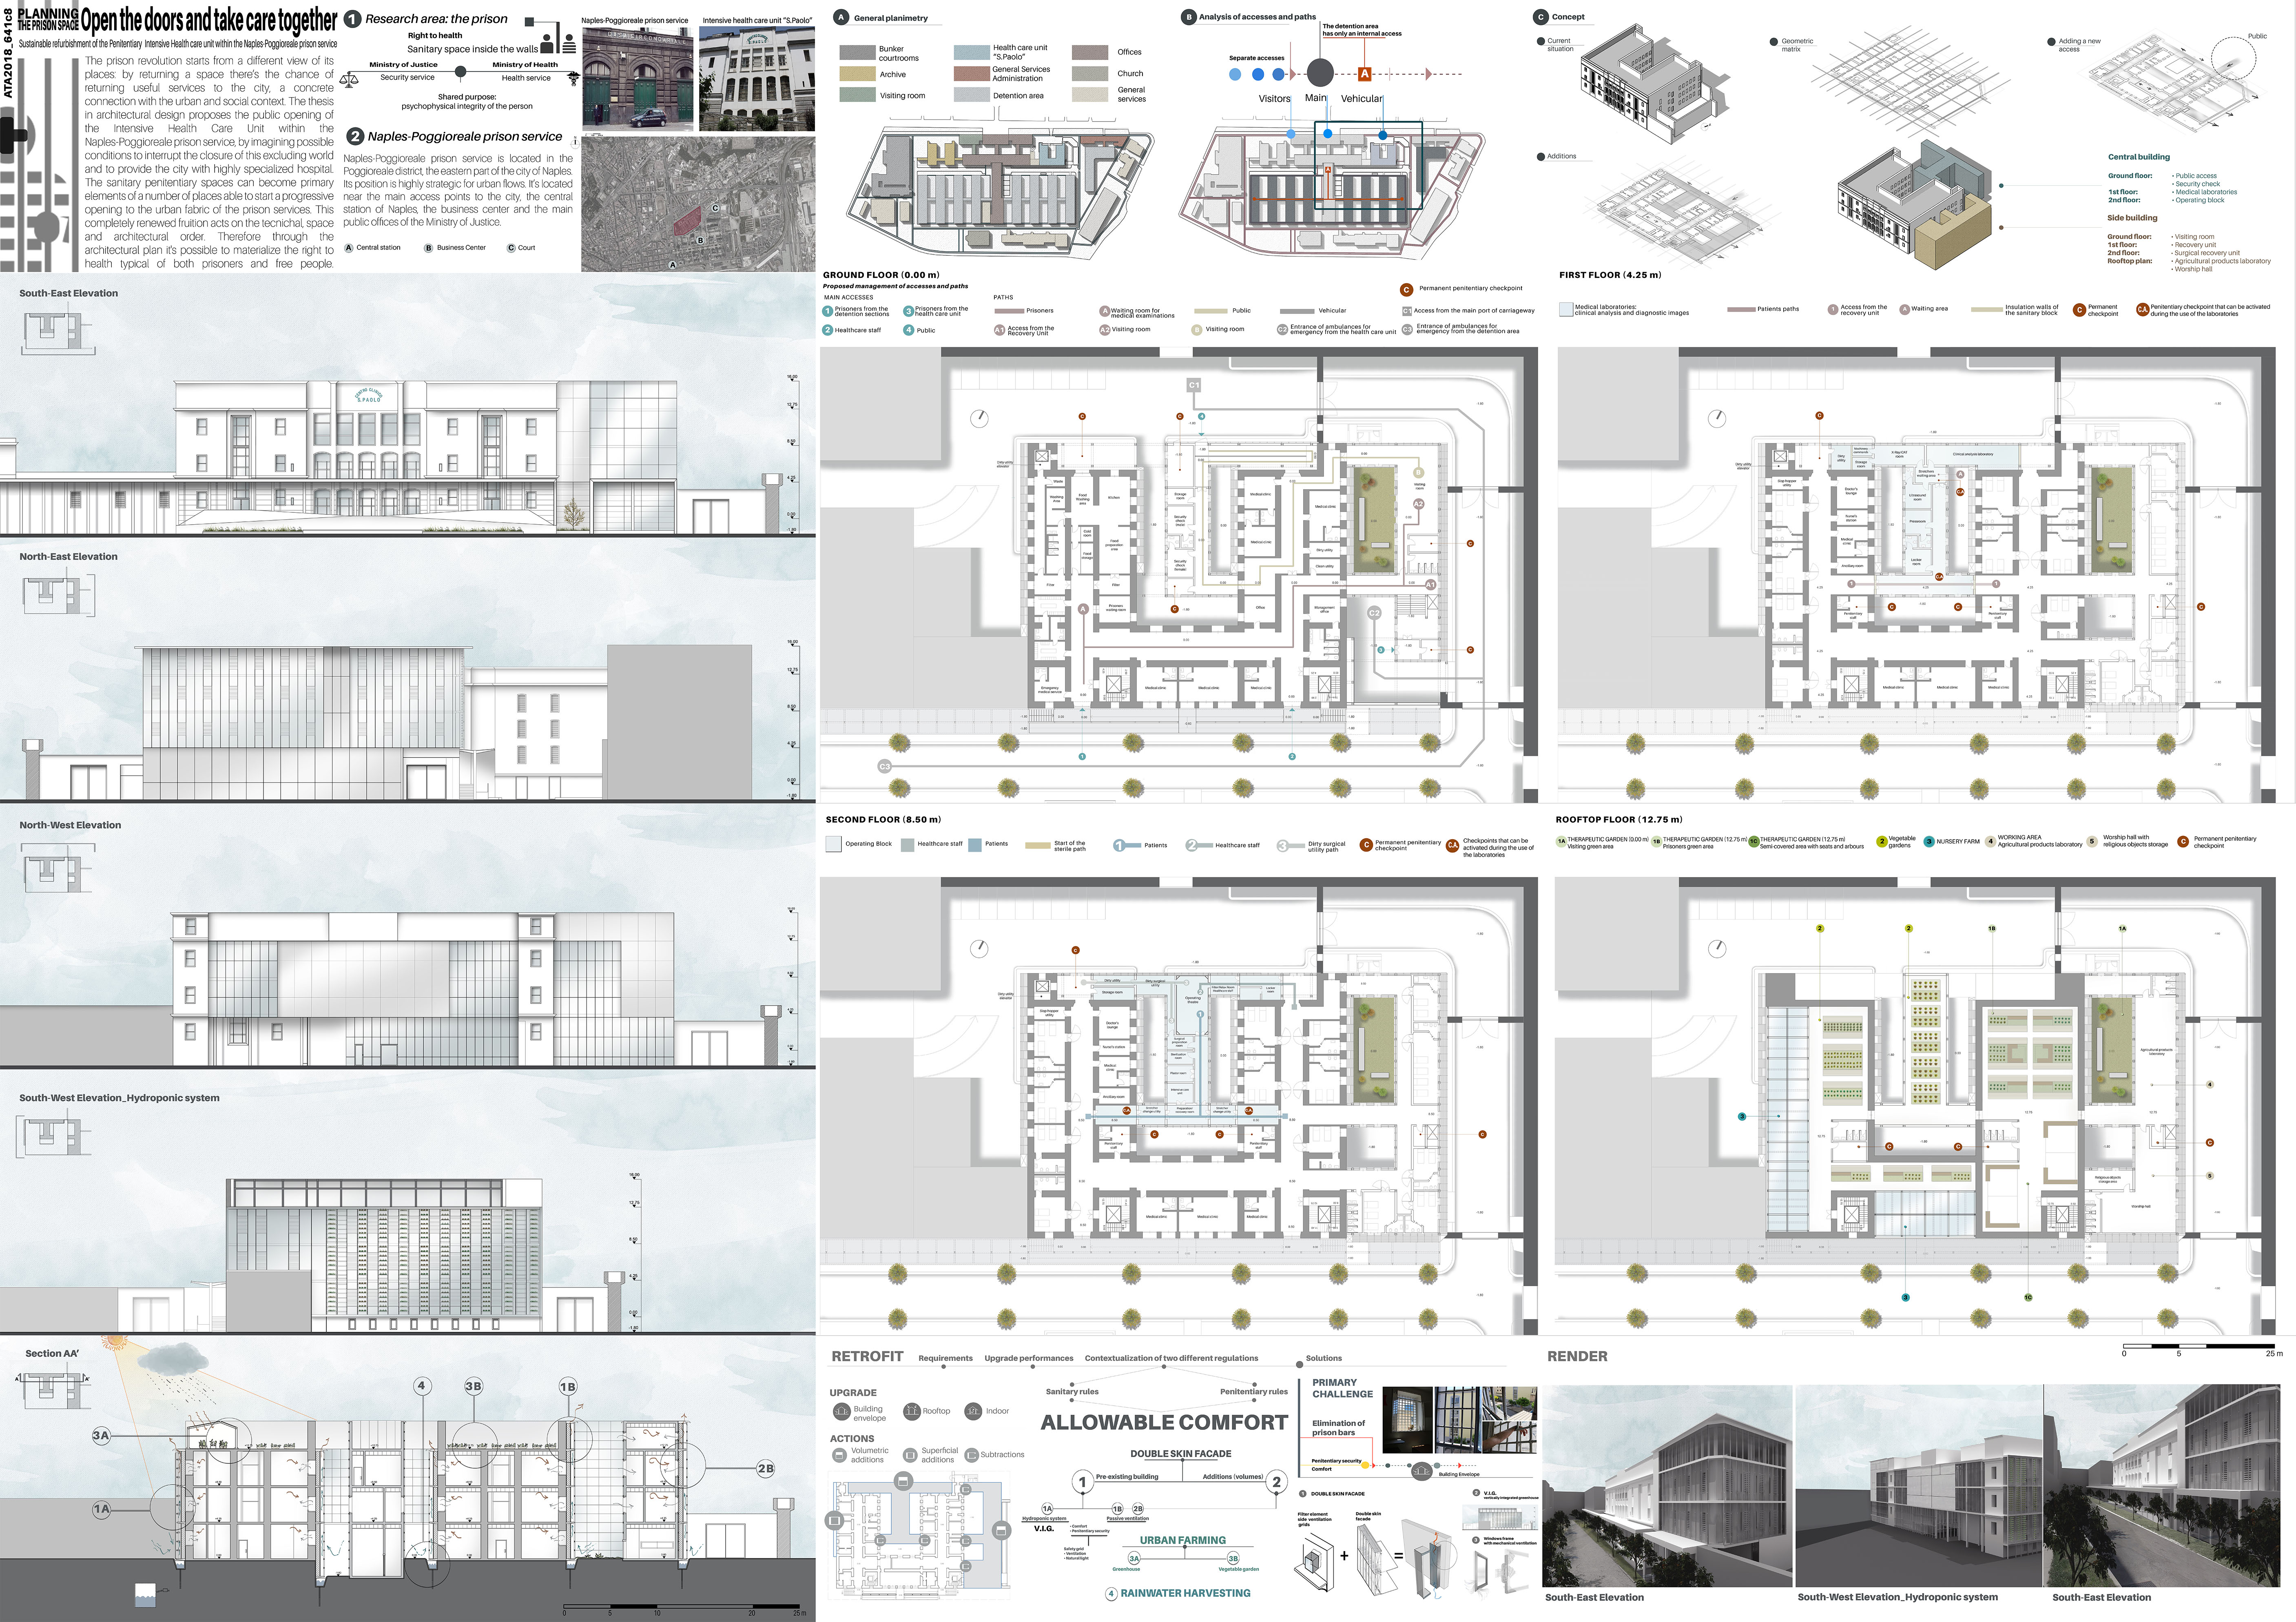 """Planning the prison space – """"Open the doors and take care together"""": sustainable refurbishment of the Penitentiary Intensive Health Care Unit within the Naples-Poggioreale prison service Board"""